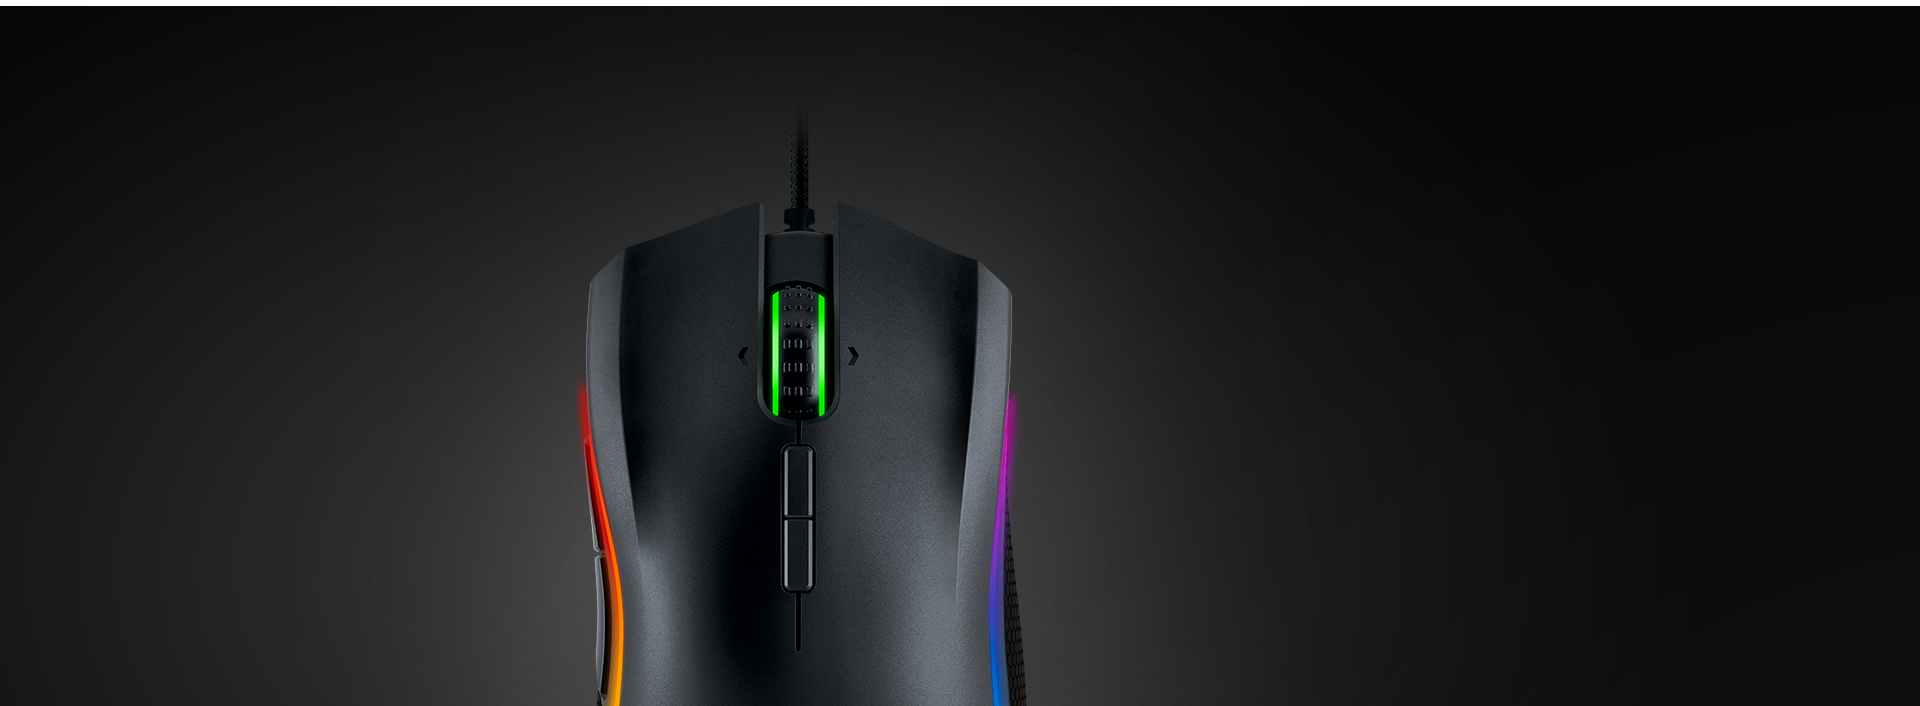 razer mamba tournament edition ergonomic gaming mouse. Black Bedroom Furniture Sets. Home Design Ideas